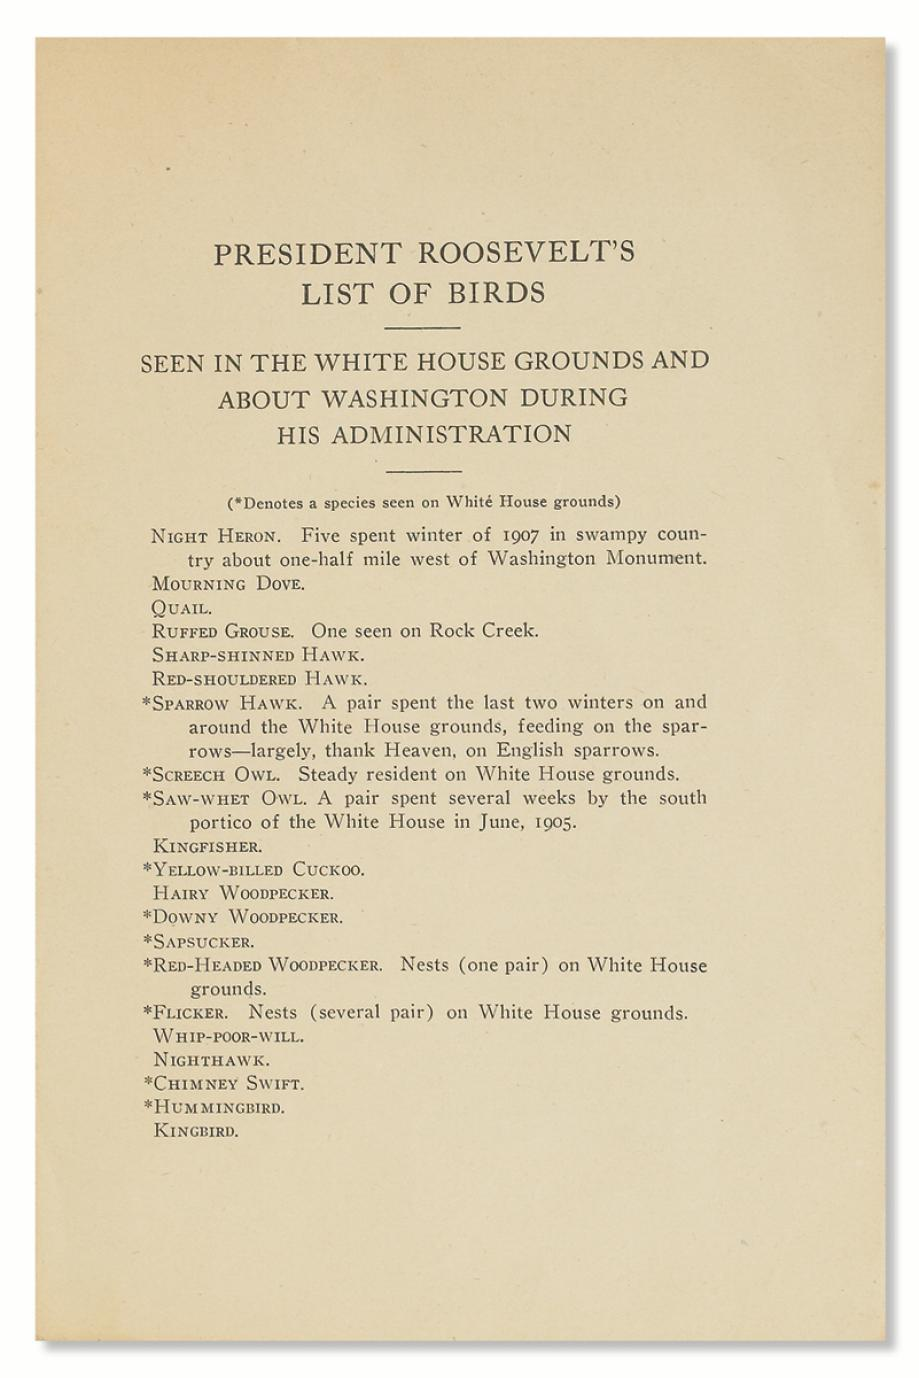 Theodore Roosevelt's White House Bird List